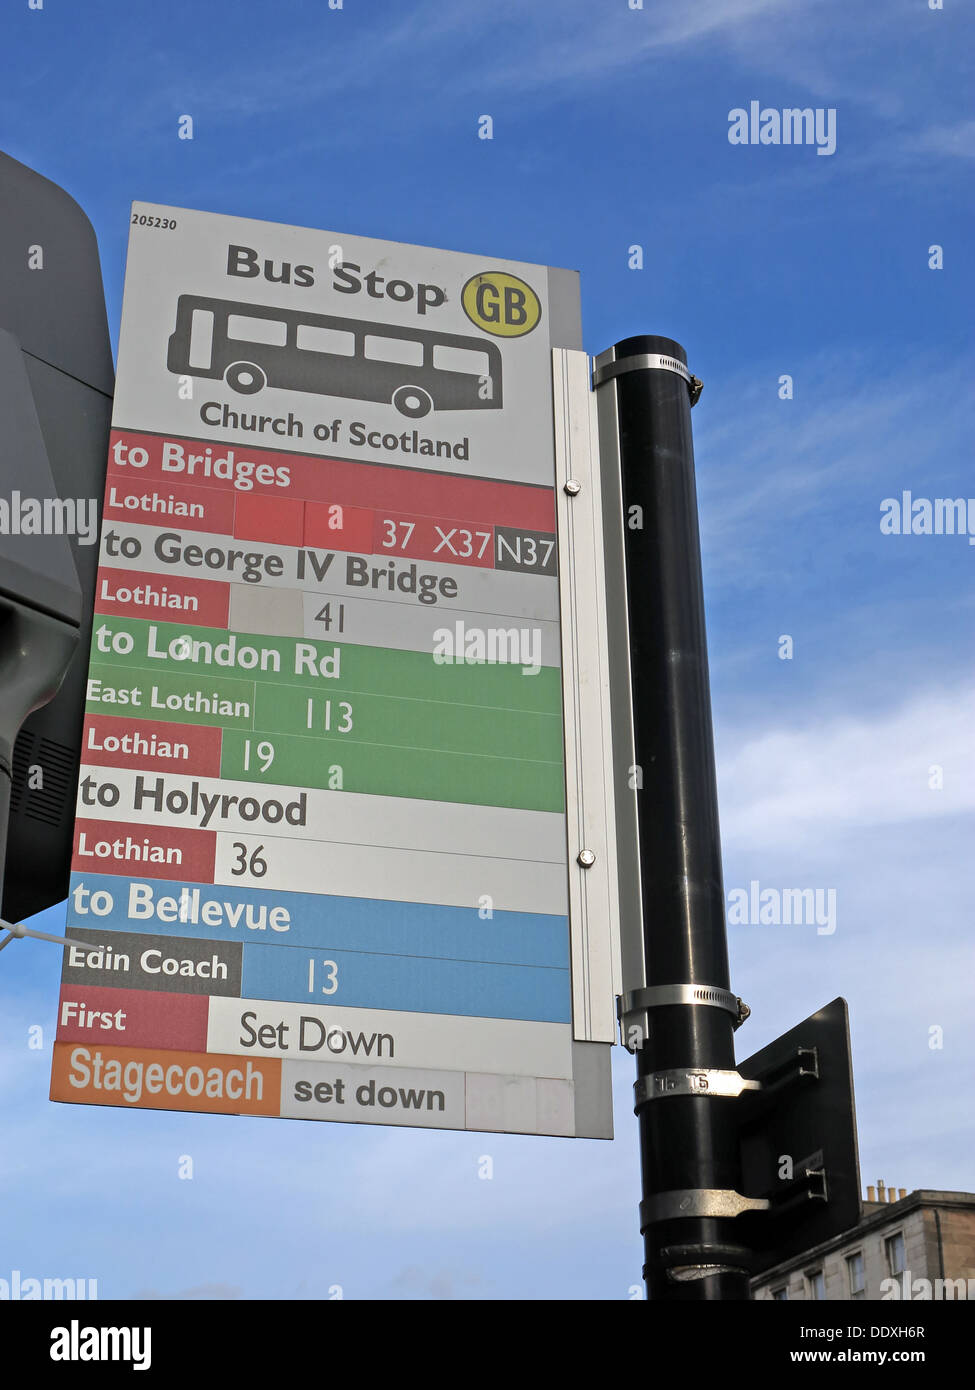 Edinburgh city bus stop,Lothian,First,Stagecoach buses - Stock Image